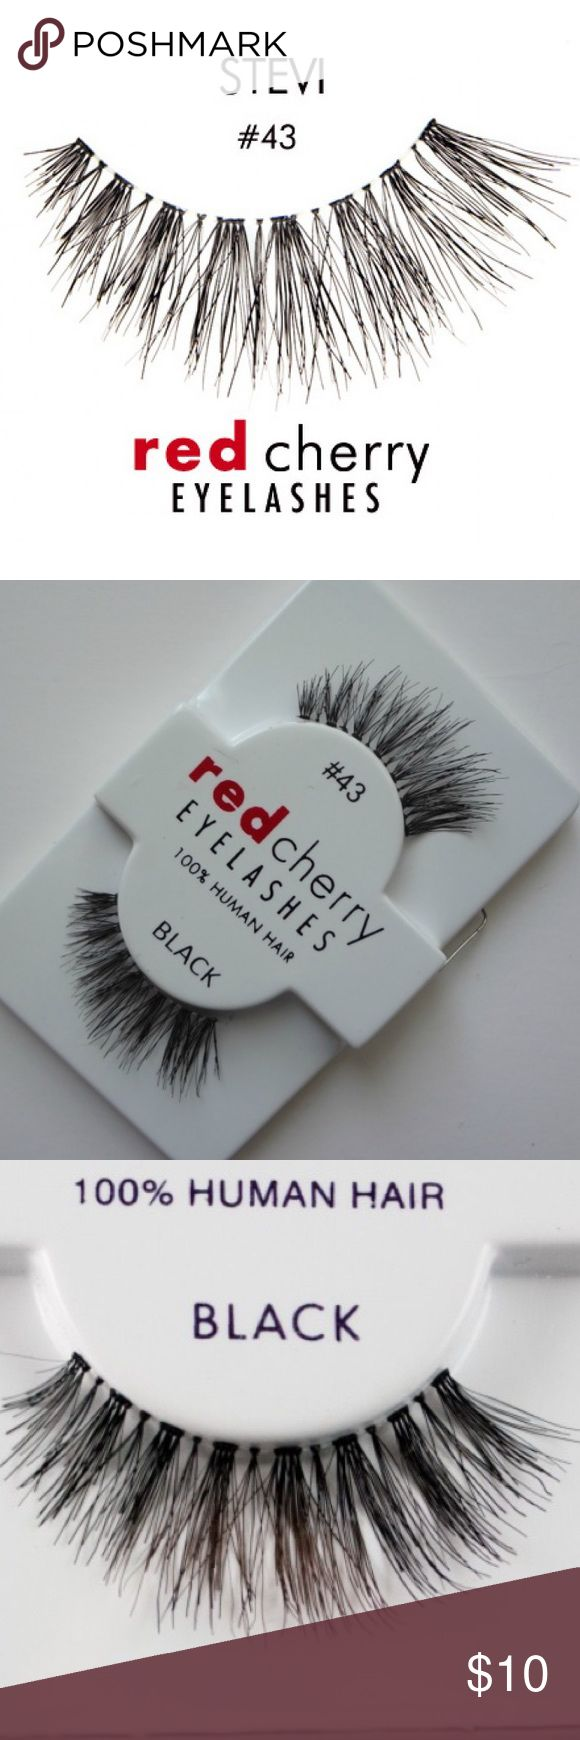 59ef33acdcb NWT Red Cherry #43 False Lashes Brand new. 100% authentic. Never used